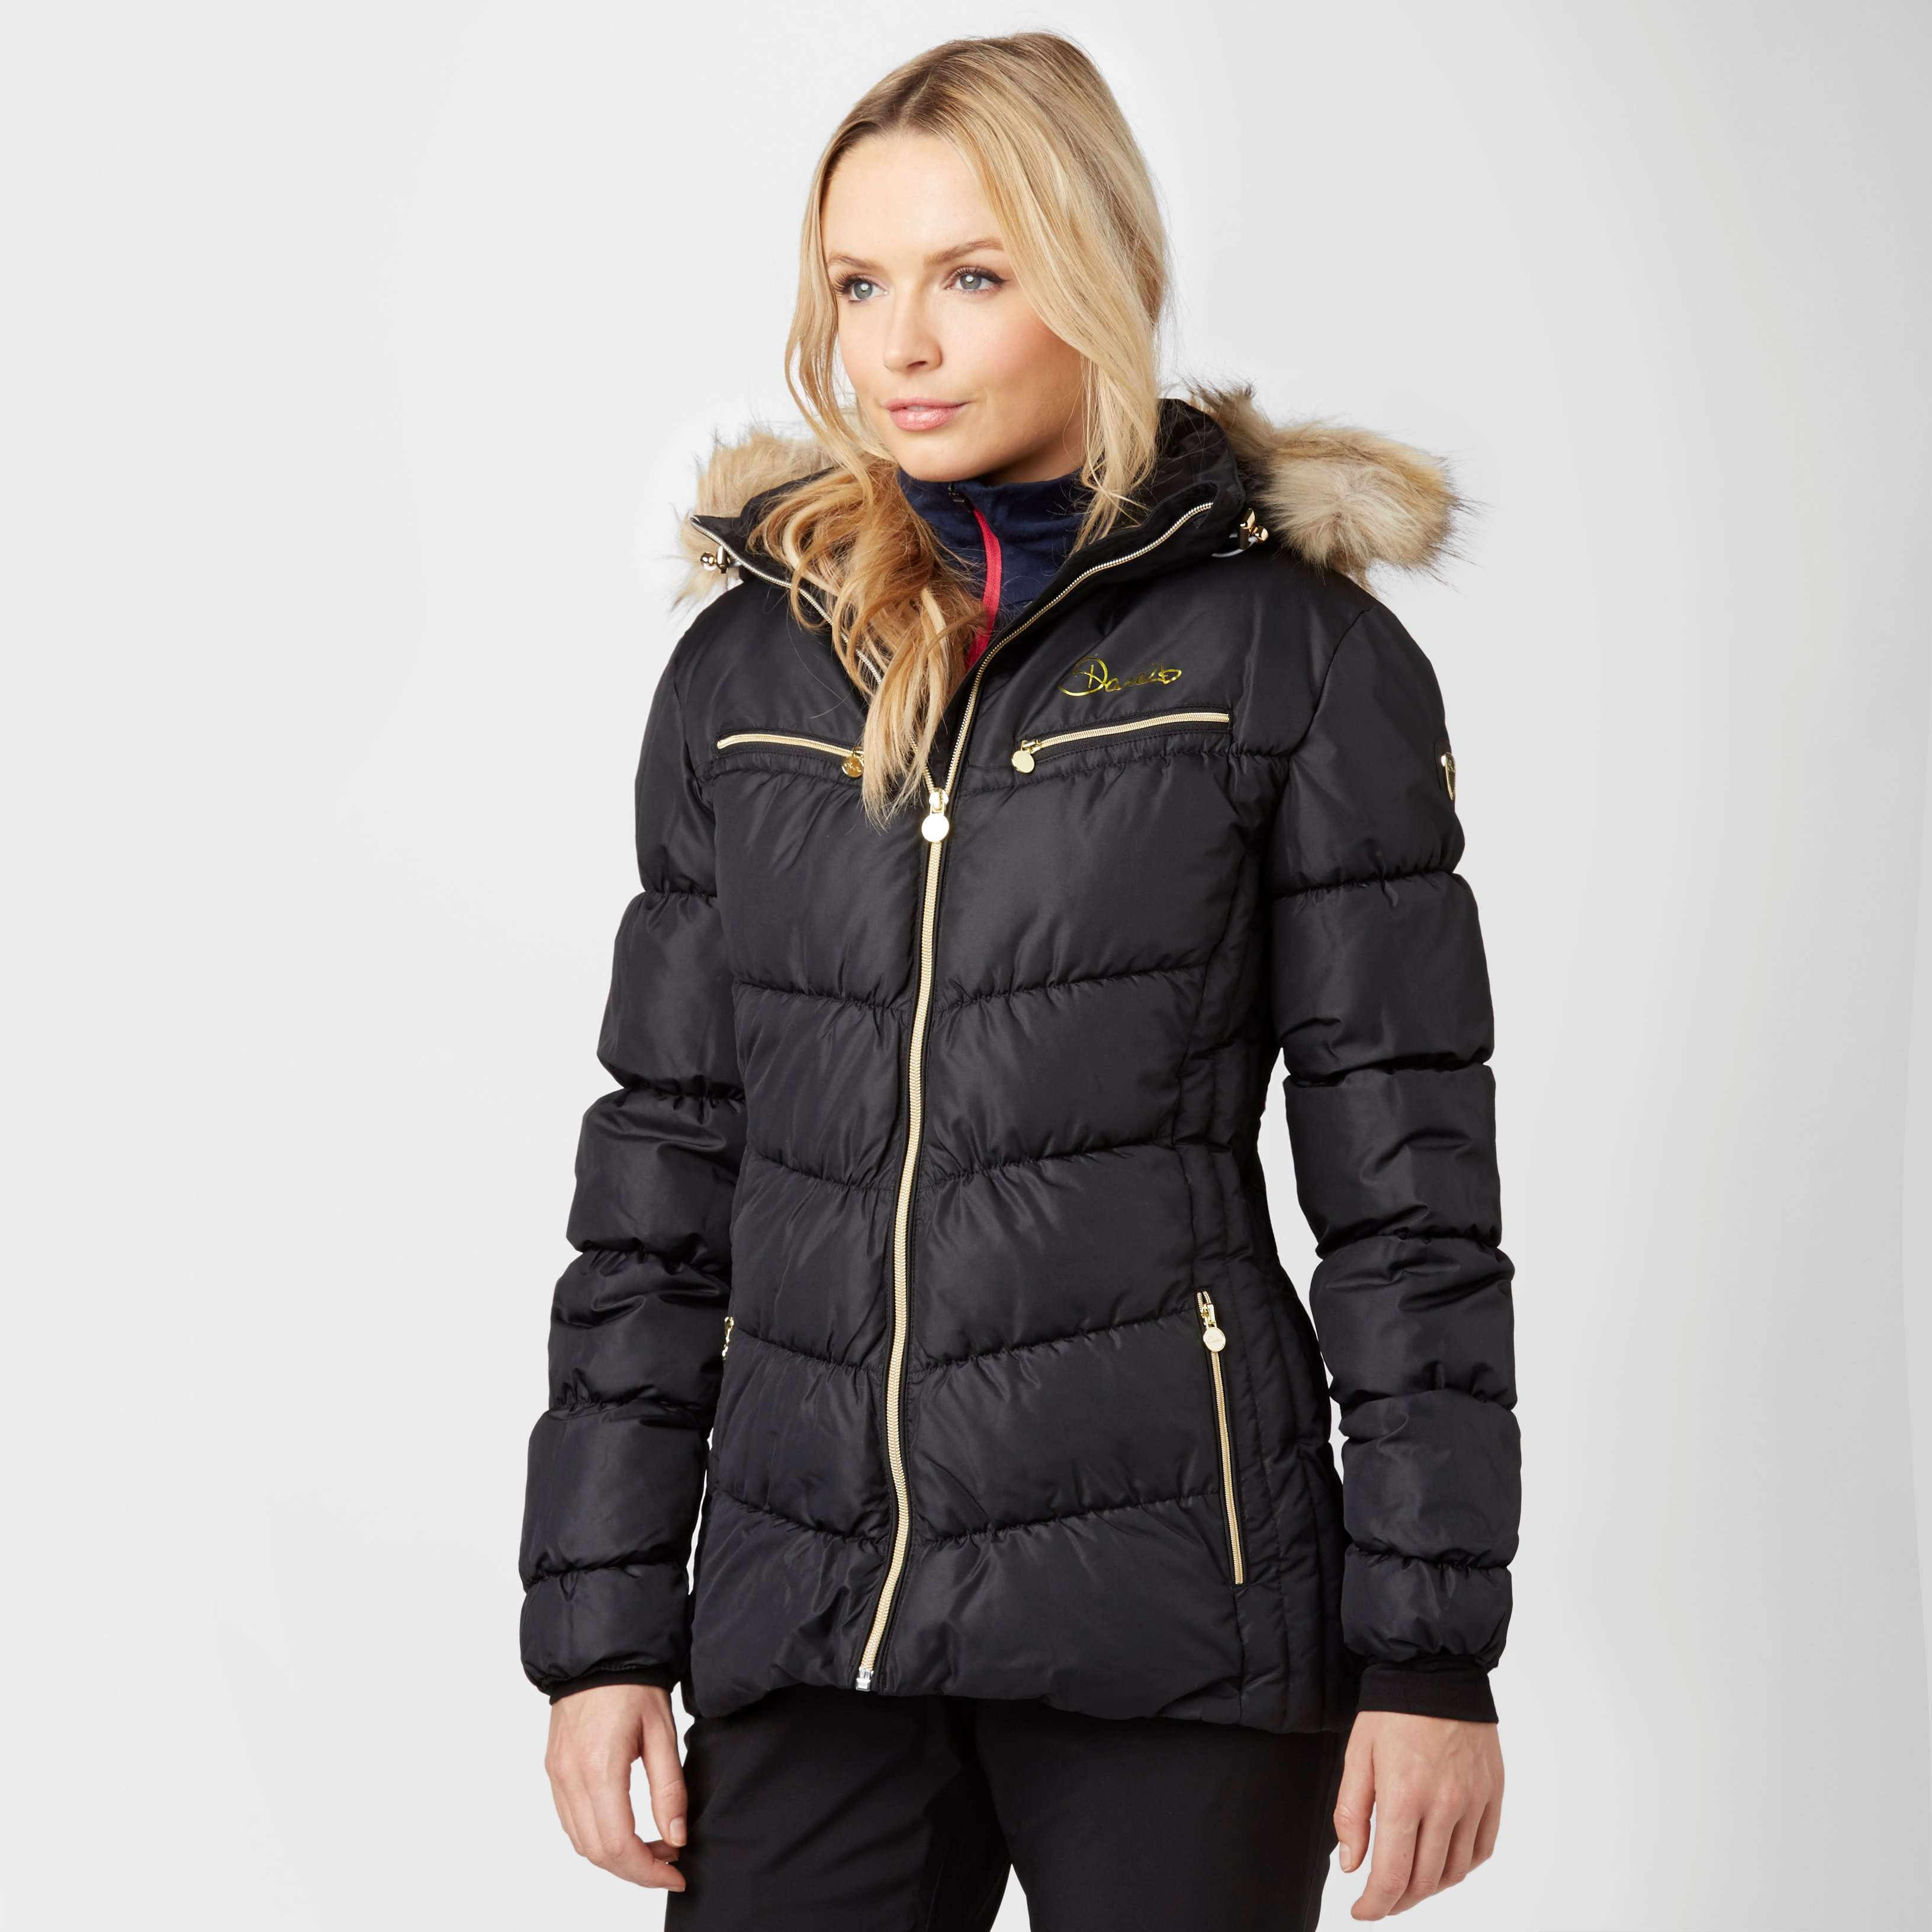 DARE 2B Women's Refined Skiing Jacket